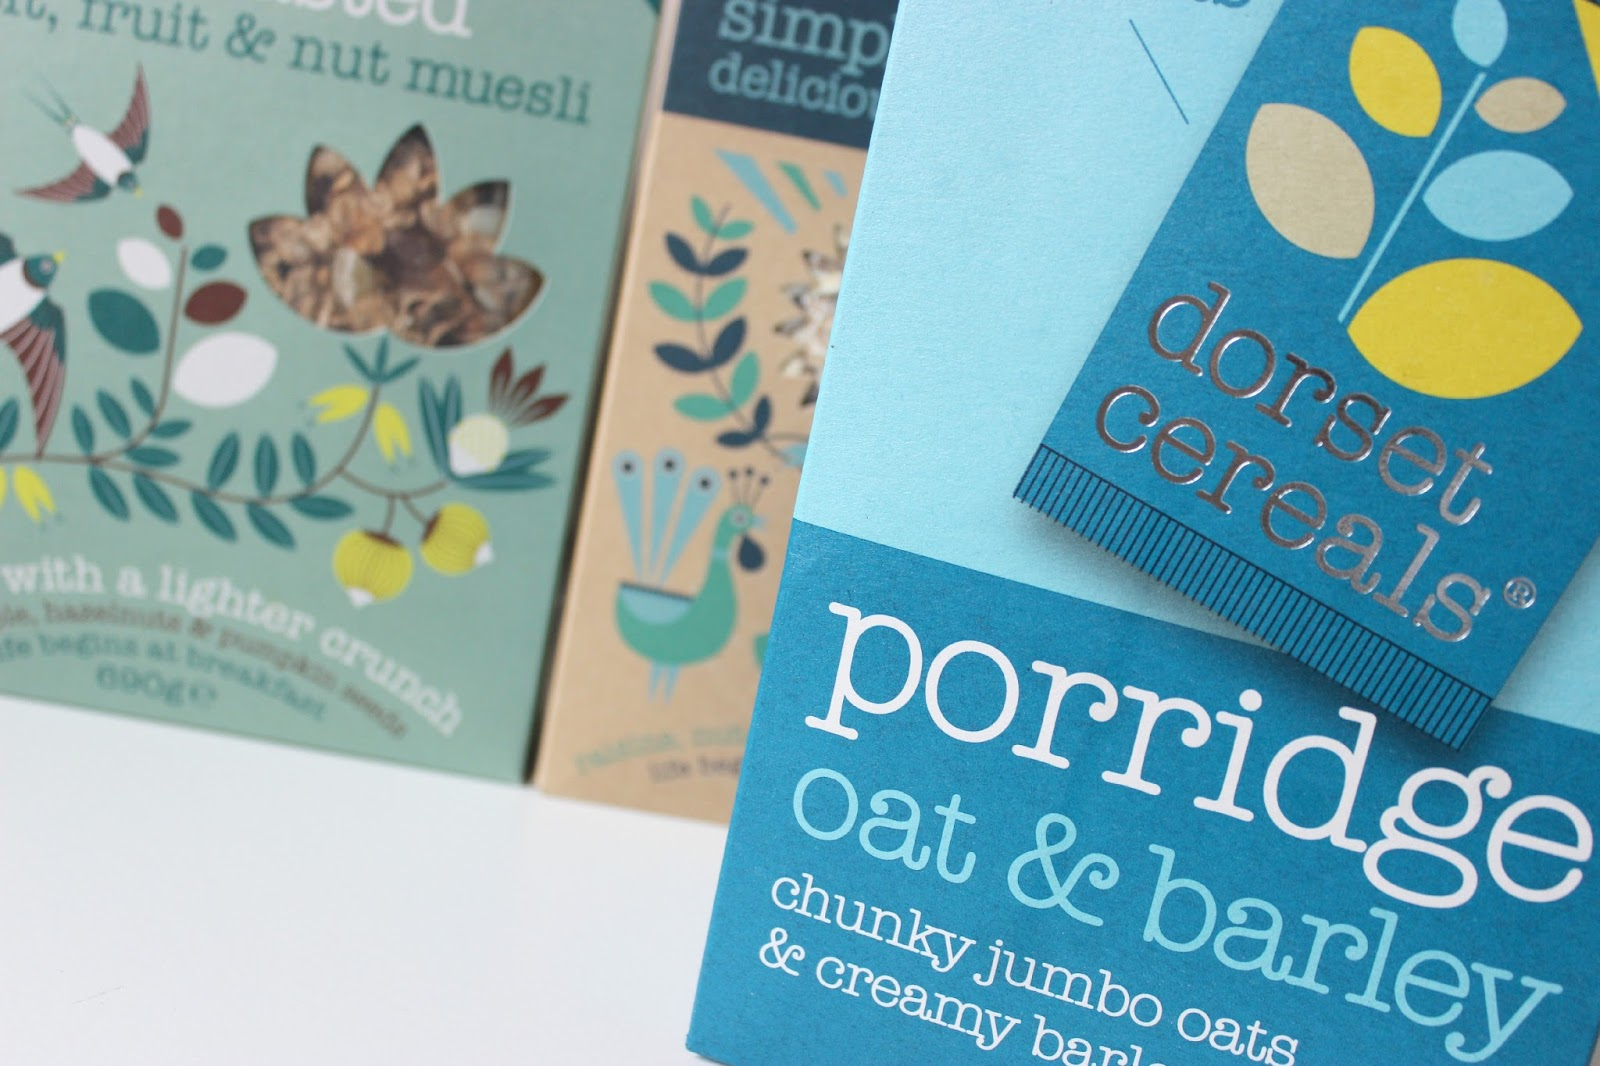 A picture of Dorset Cereals Oat & Barley Porridge Sachets